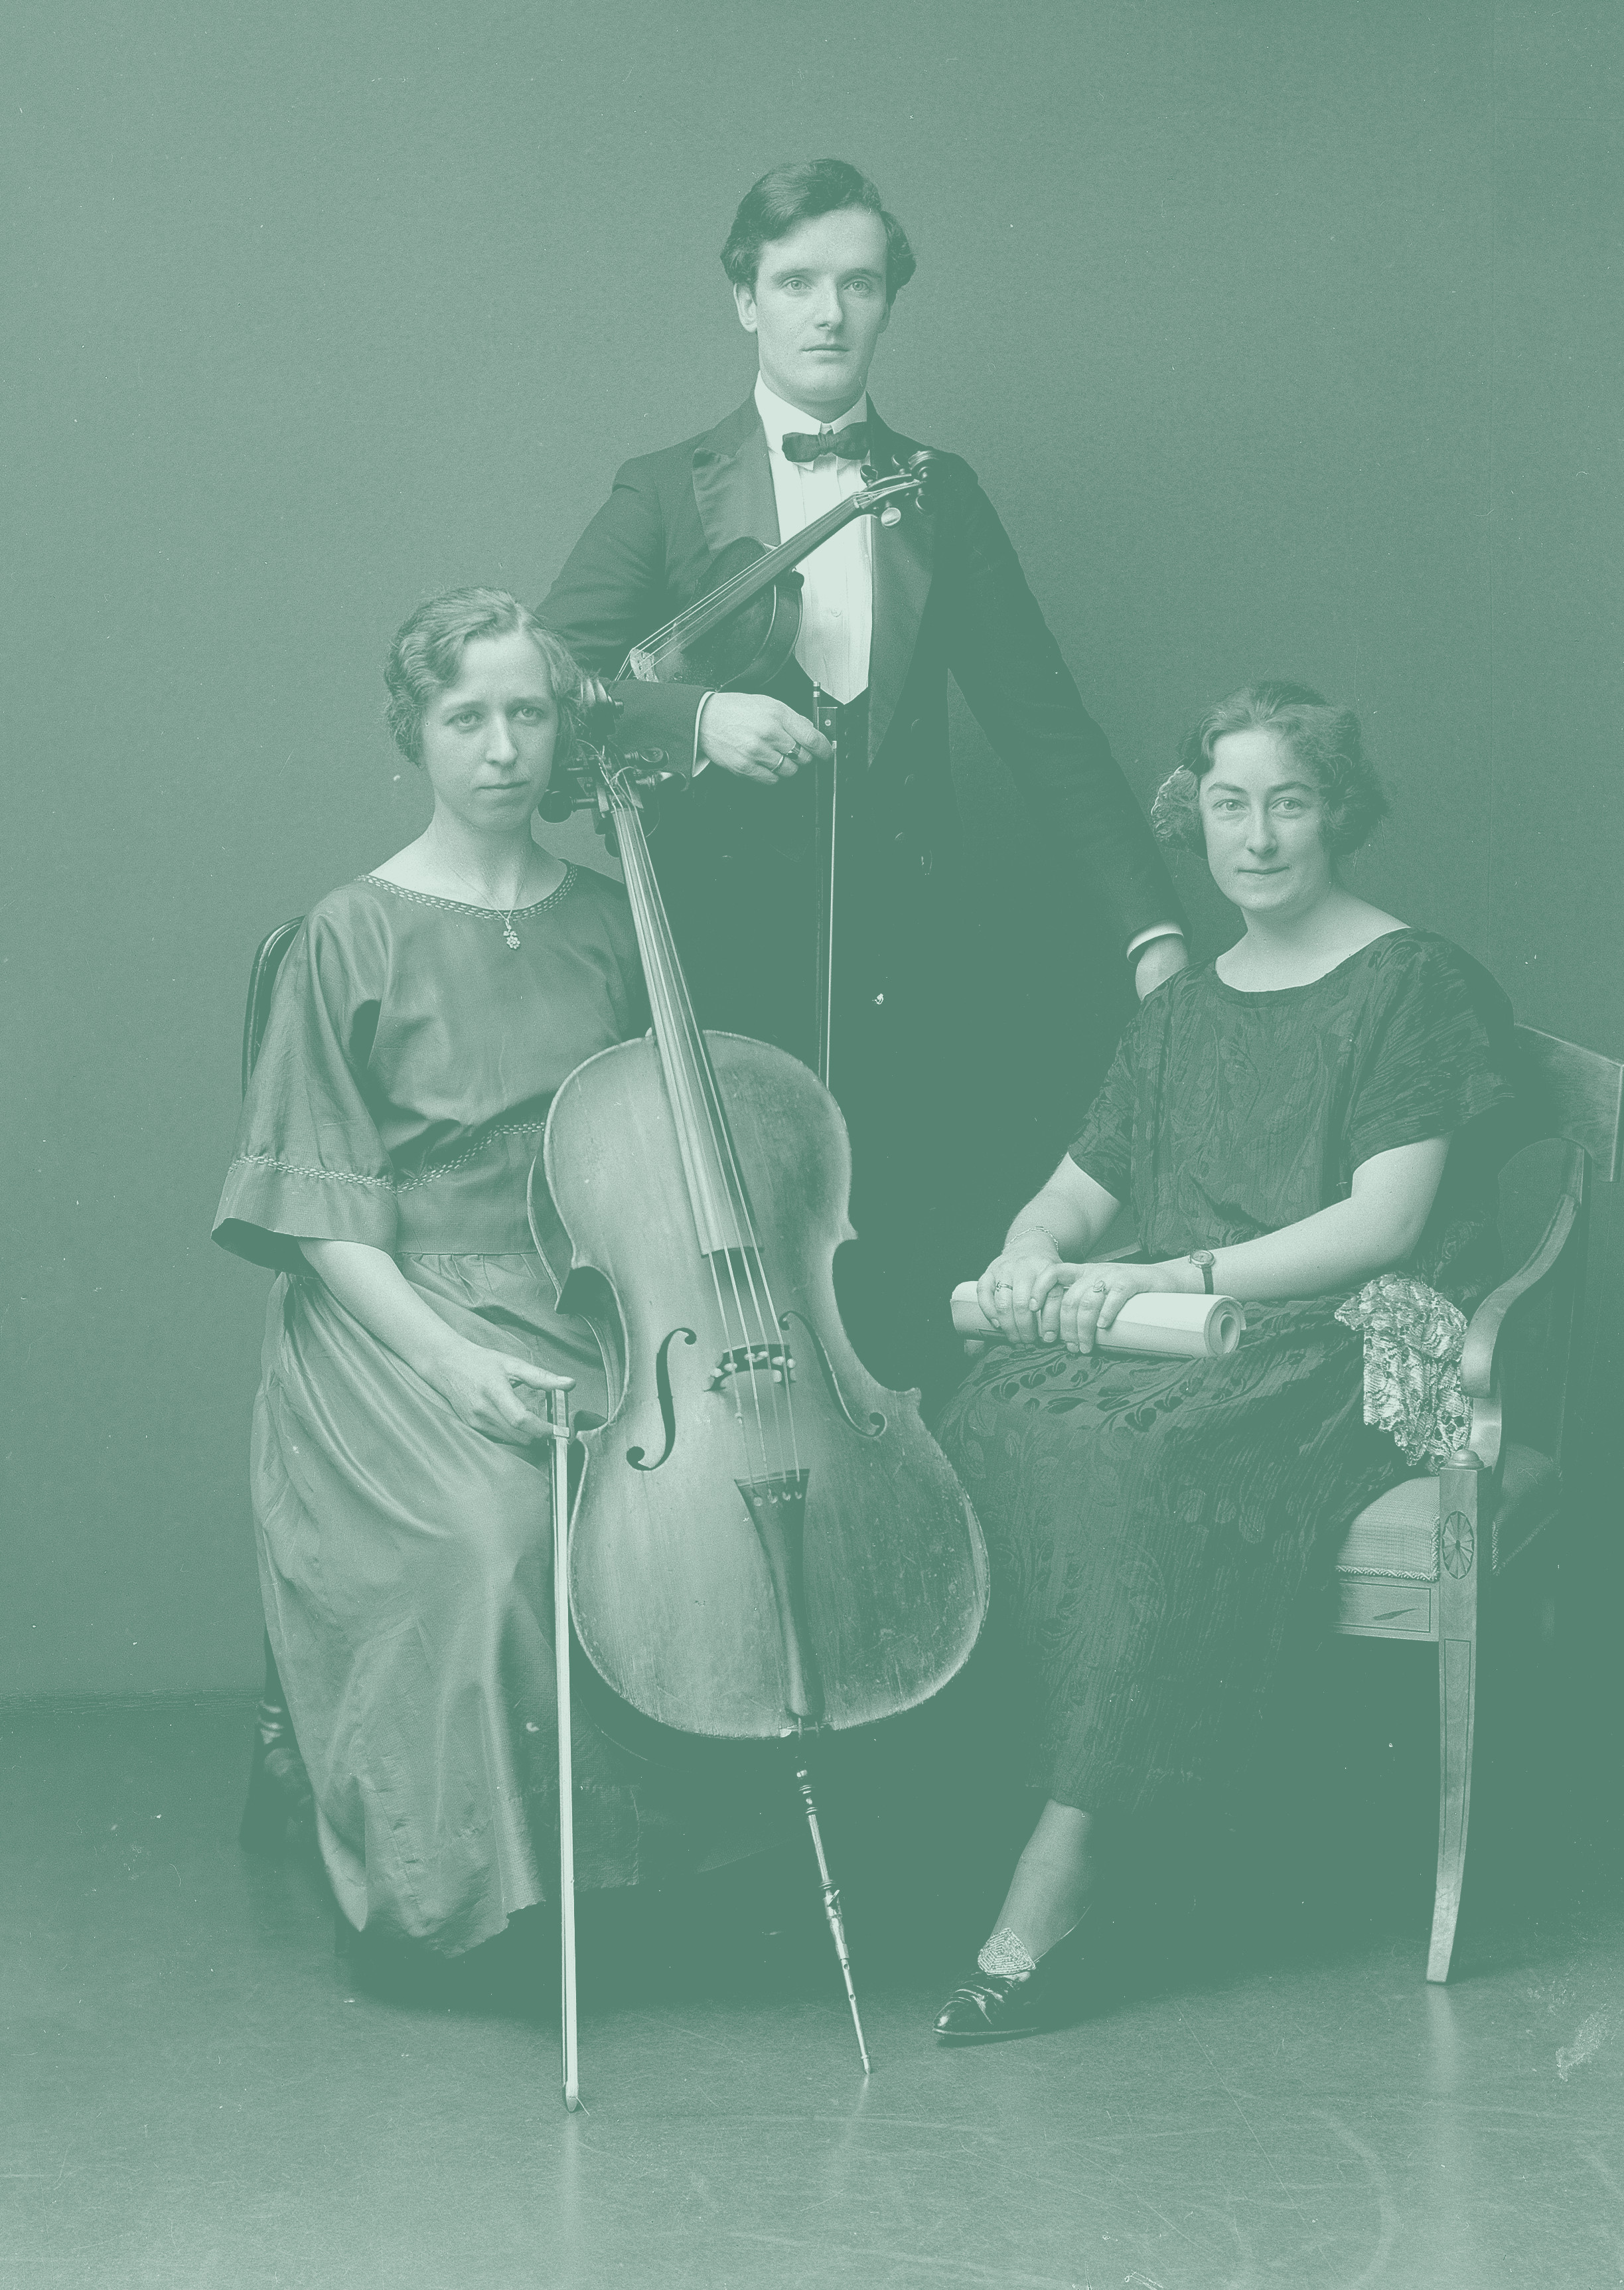 Portrait of three welldressed persons where two poses with string instruments-img